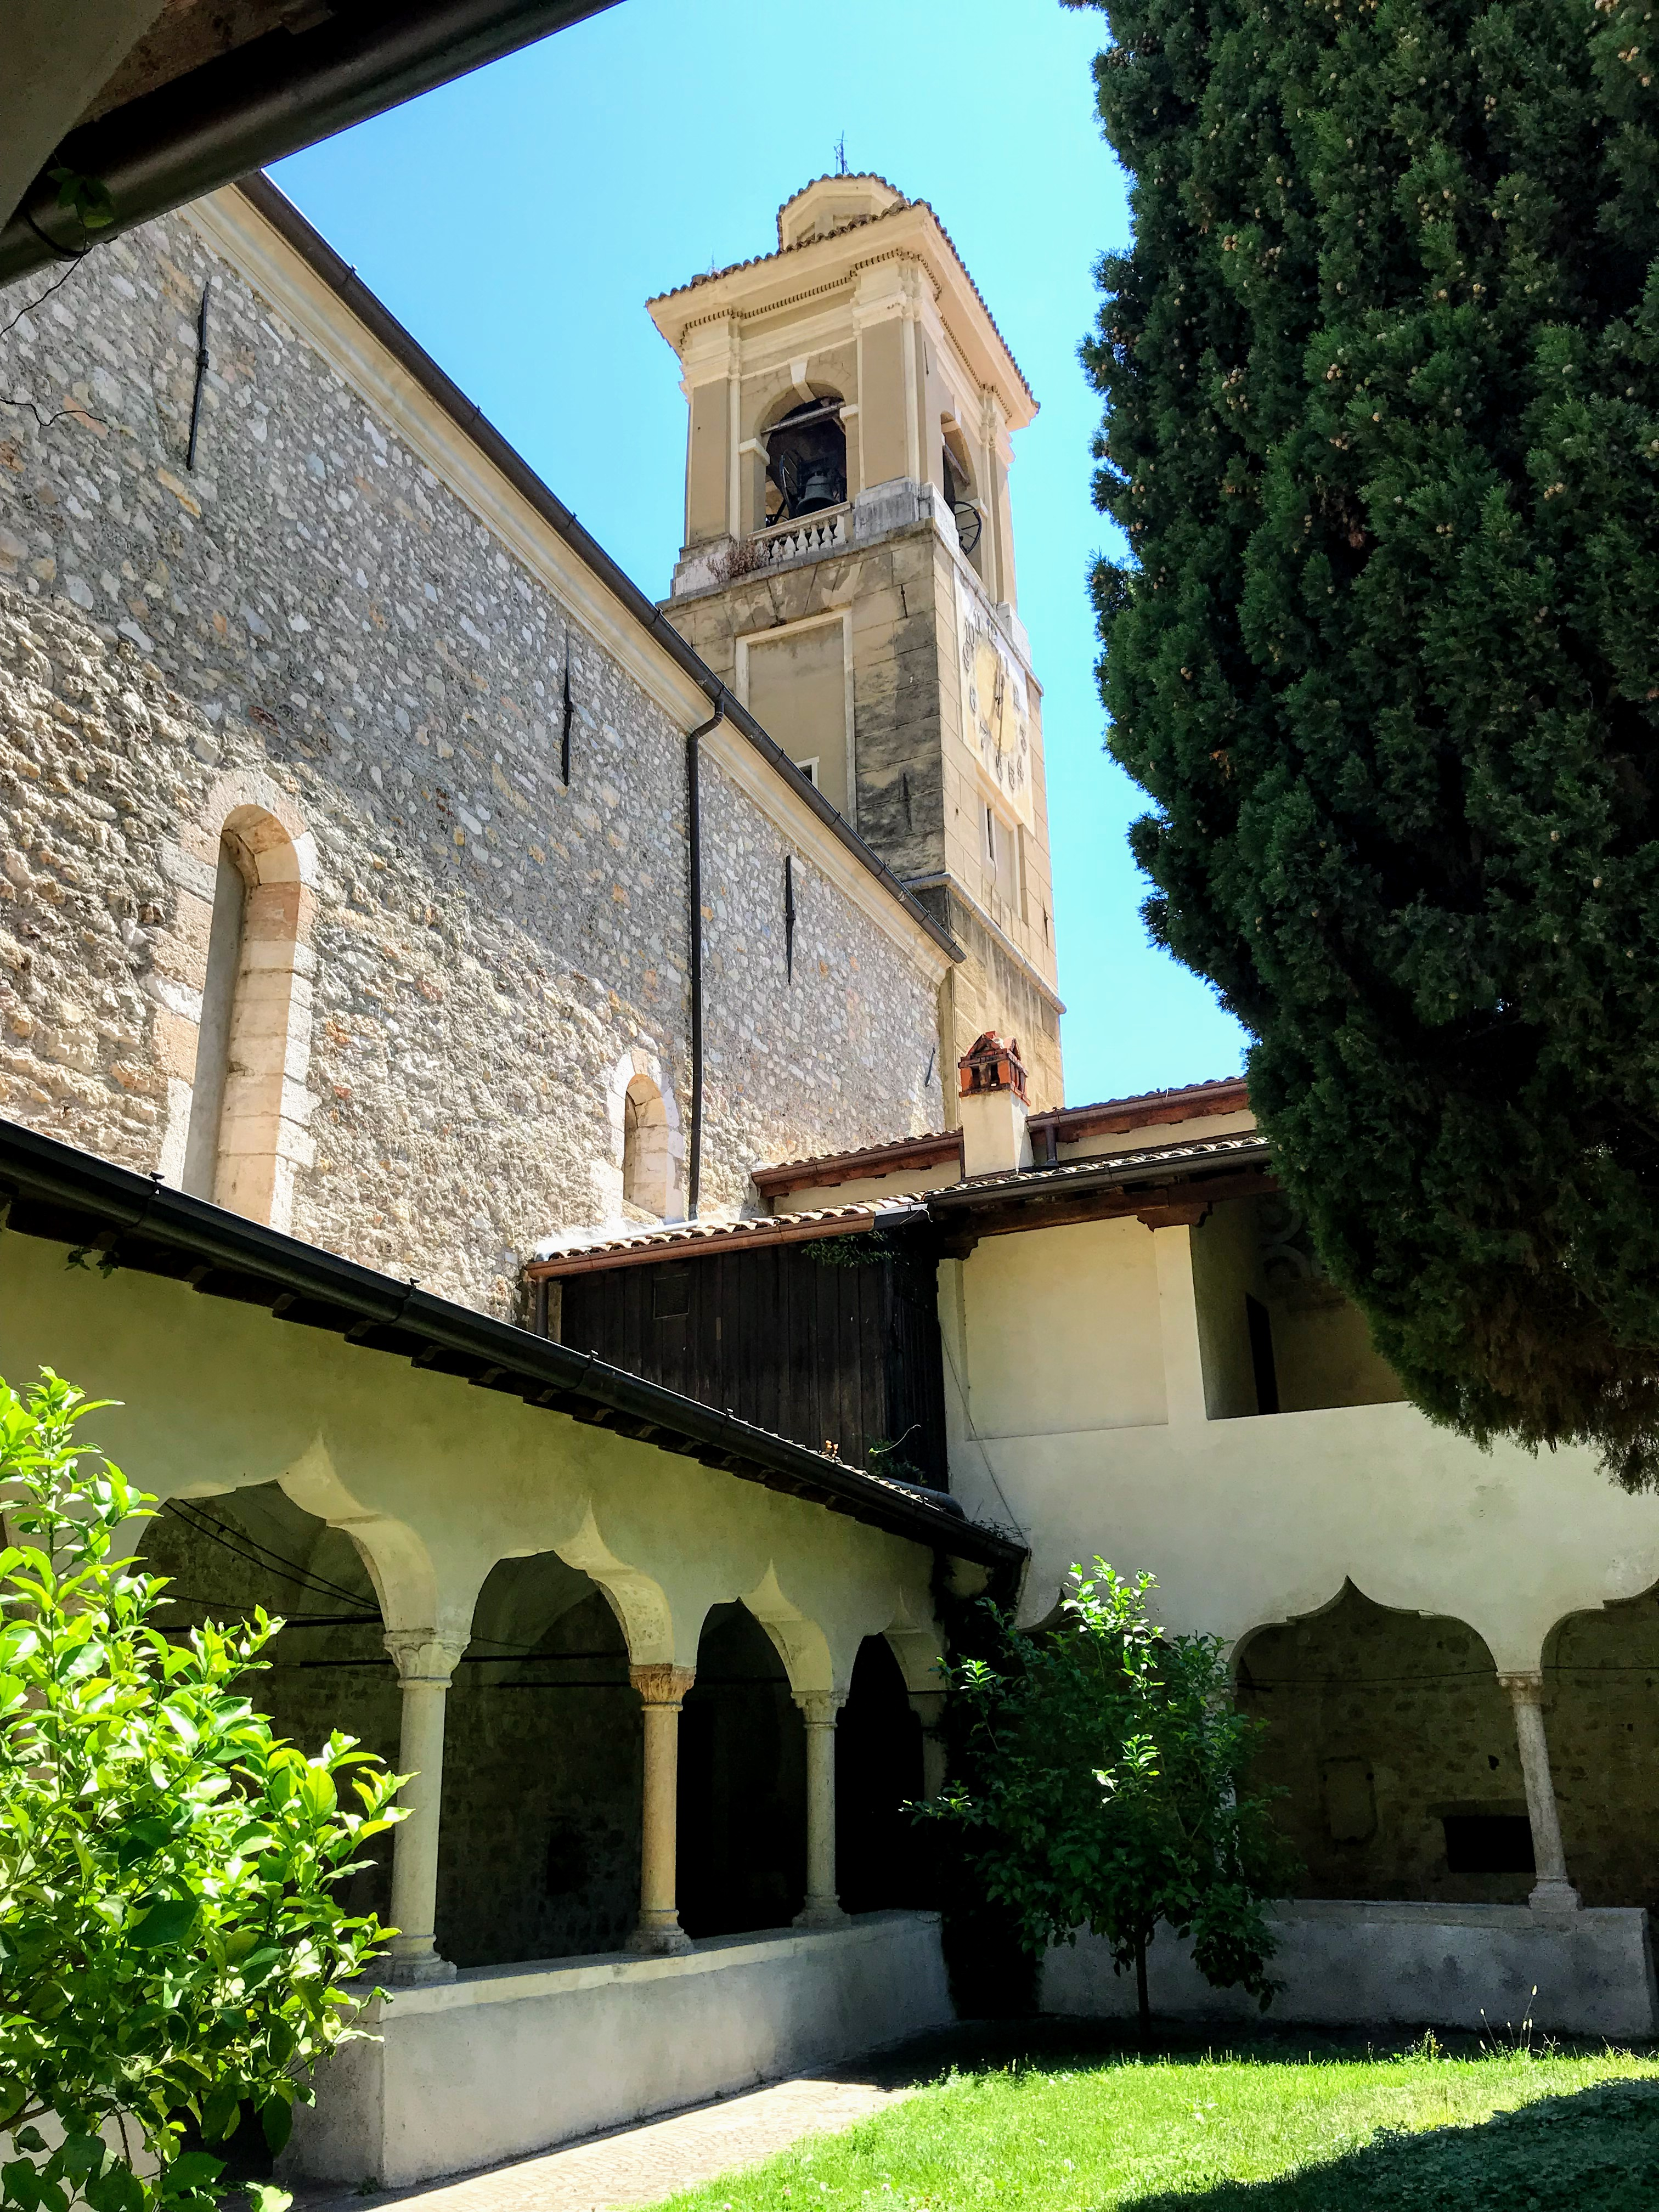 Monastery of San Francesco